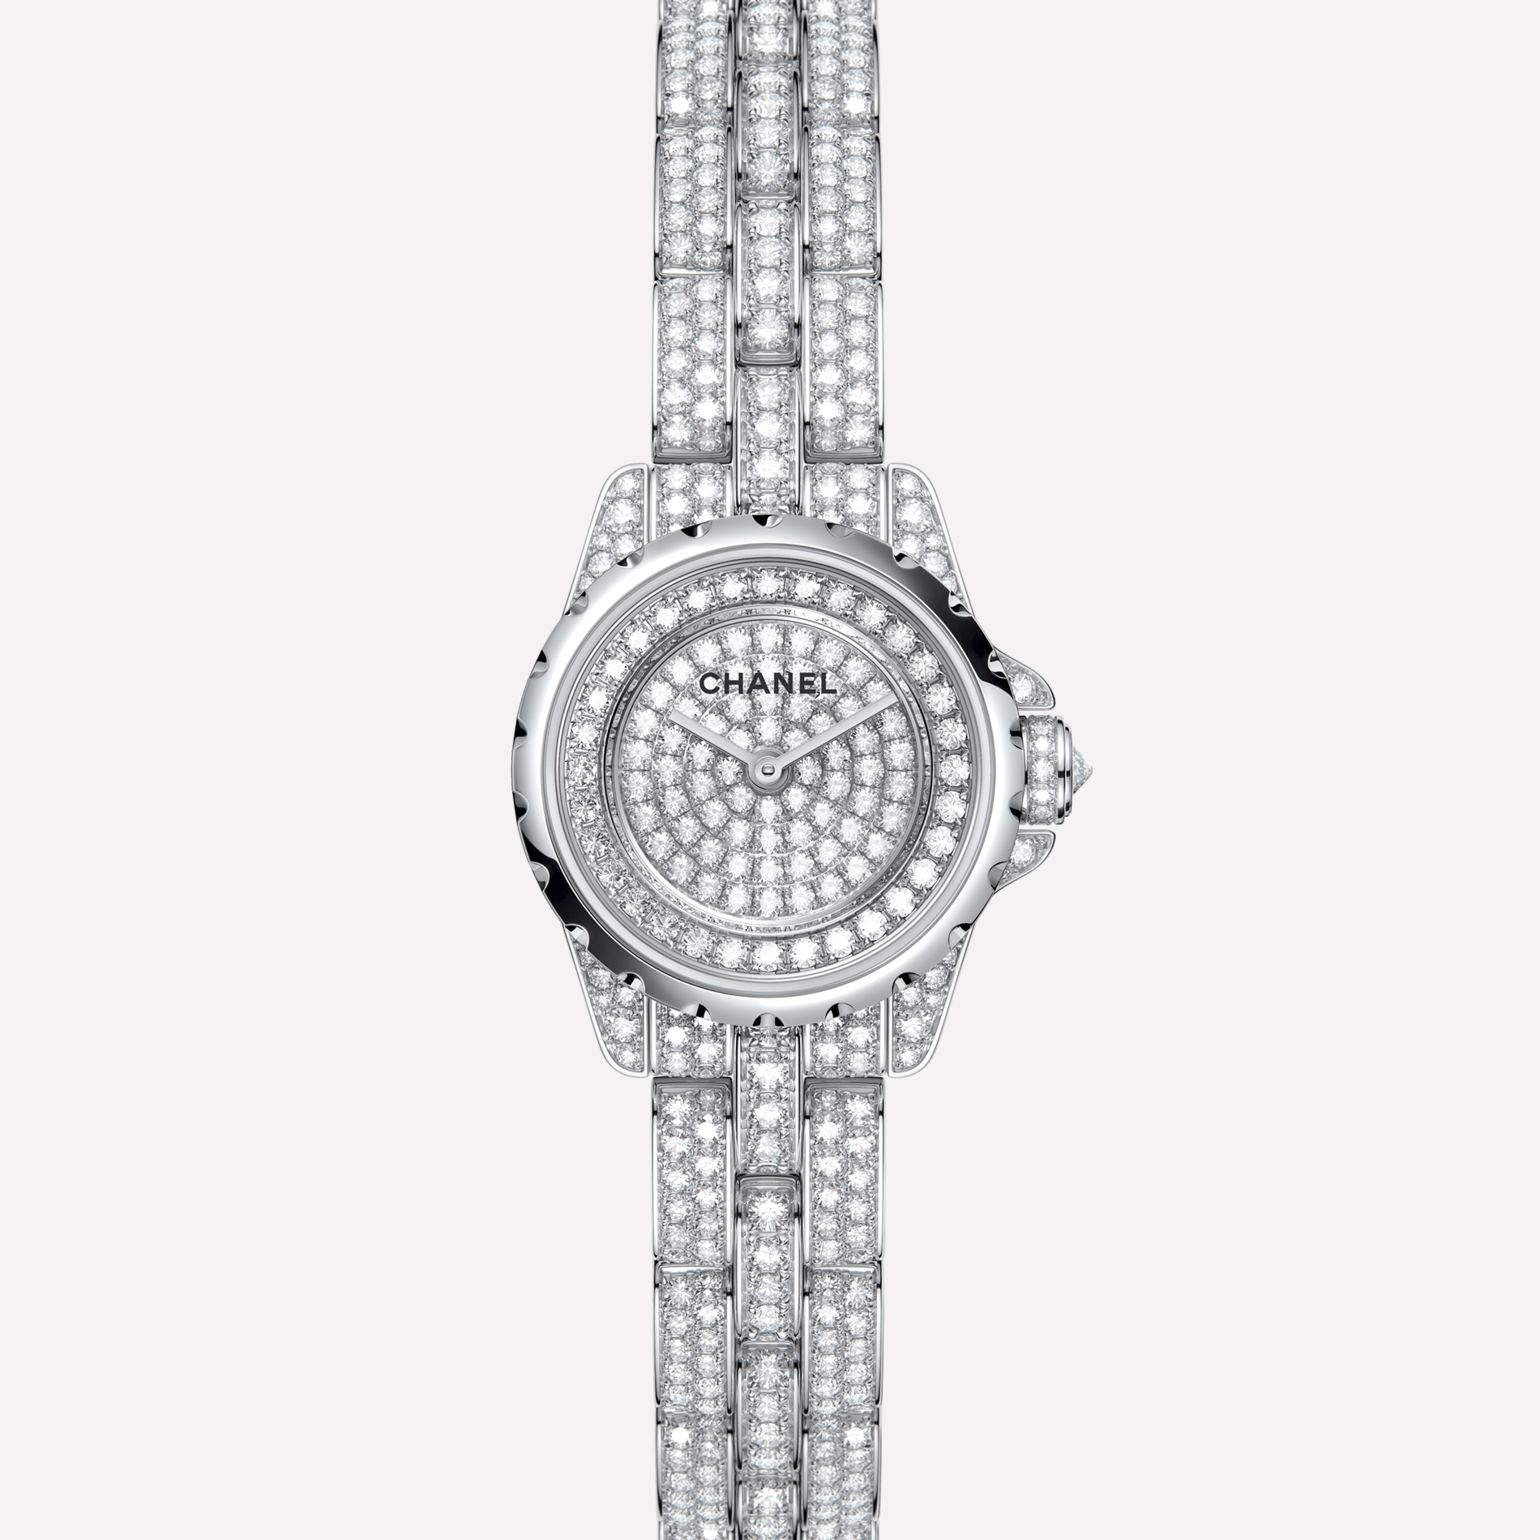 J12·XS High Jewellery Watch White gold, case, dial, bezel and bracelet set with brilliant cut diamonds